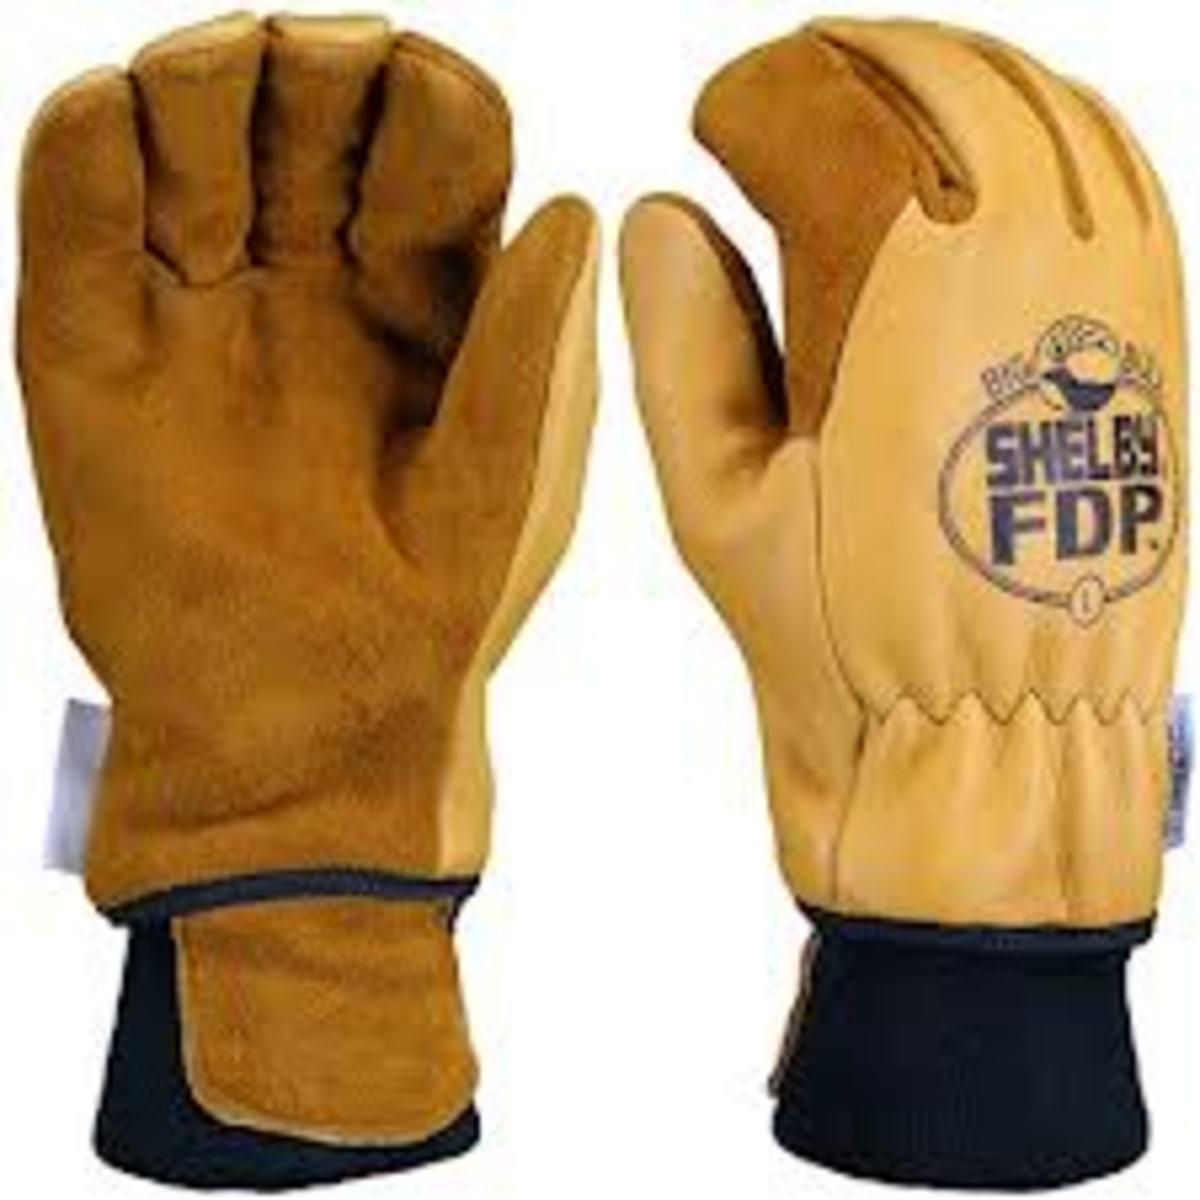 Let's Talk Fire: Drill Time- Get To Know Your Gloves